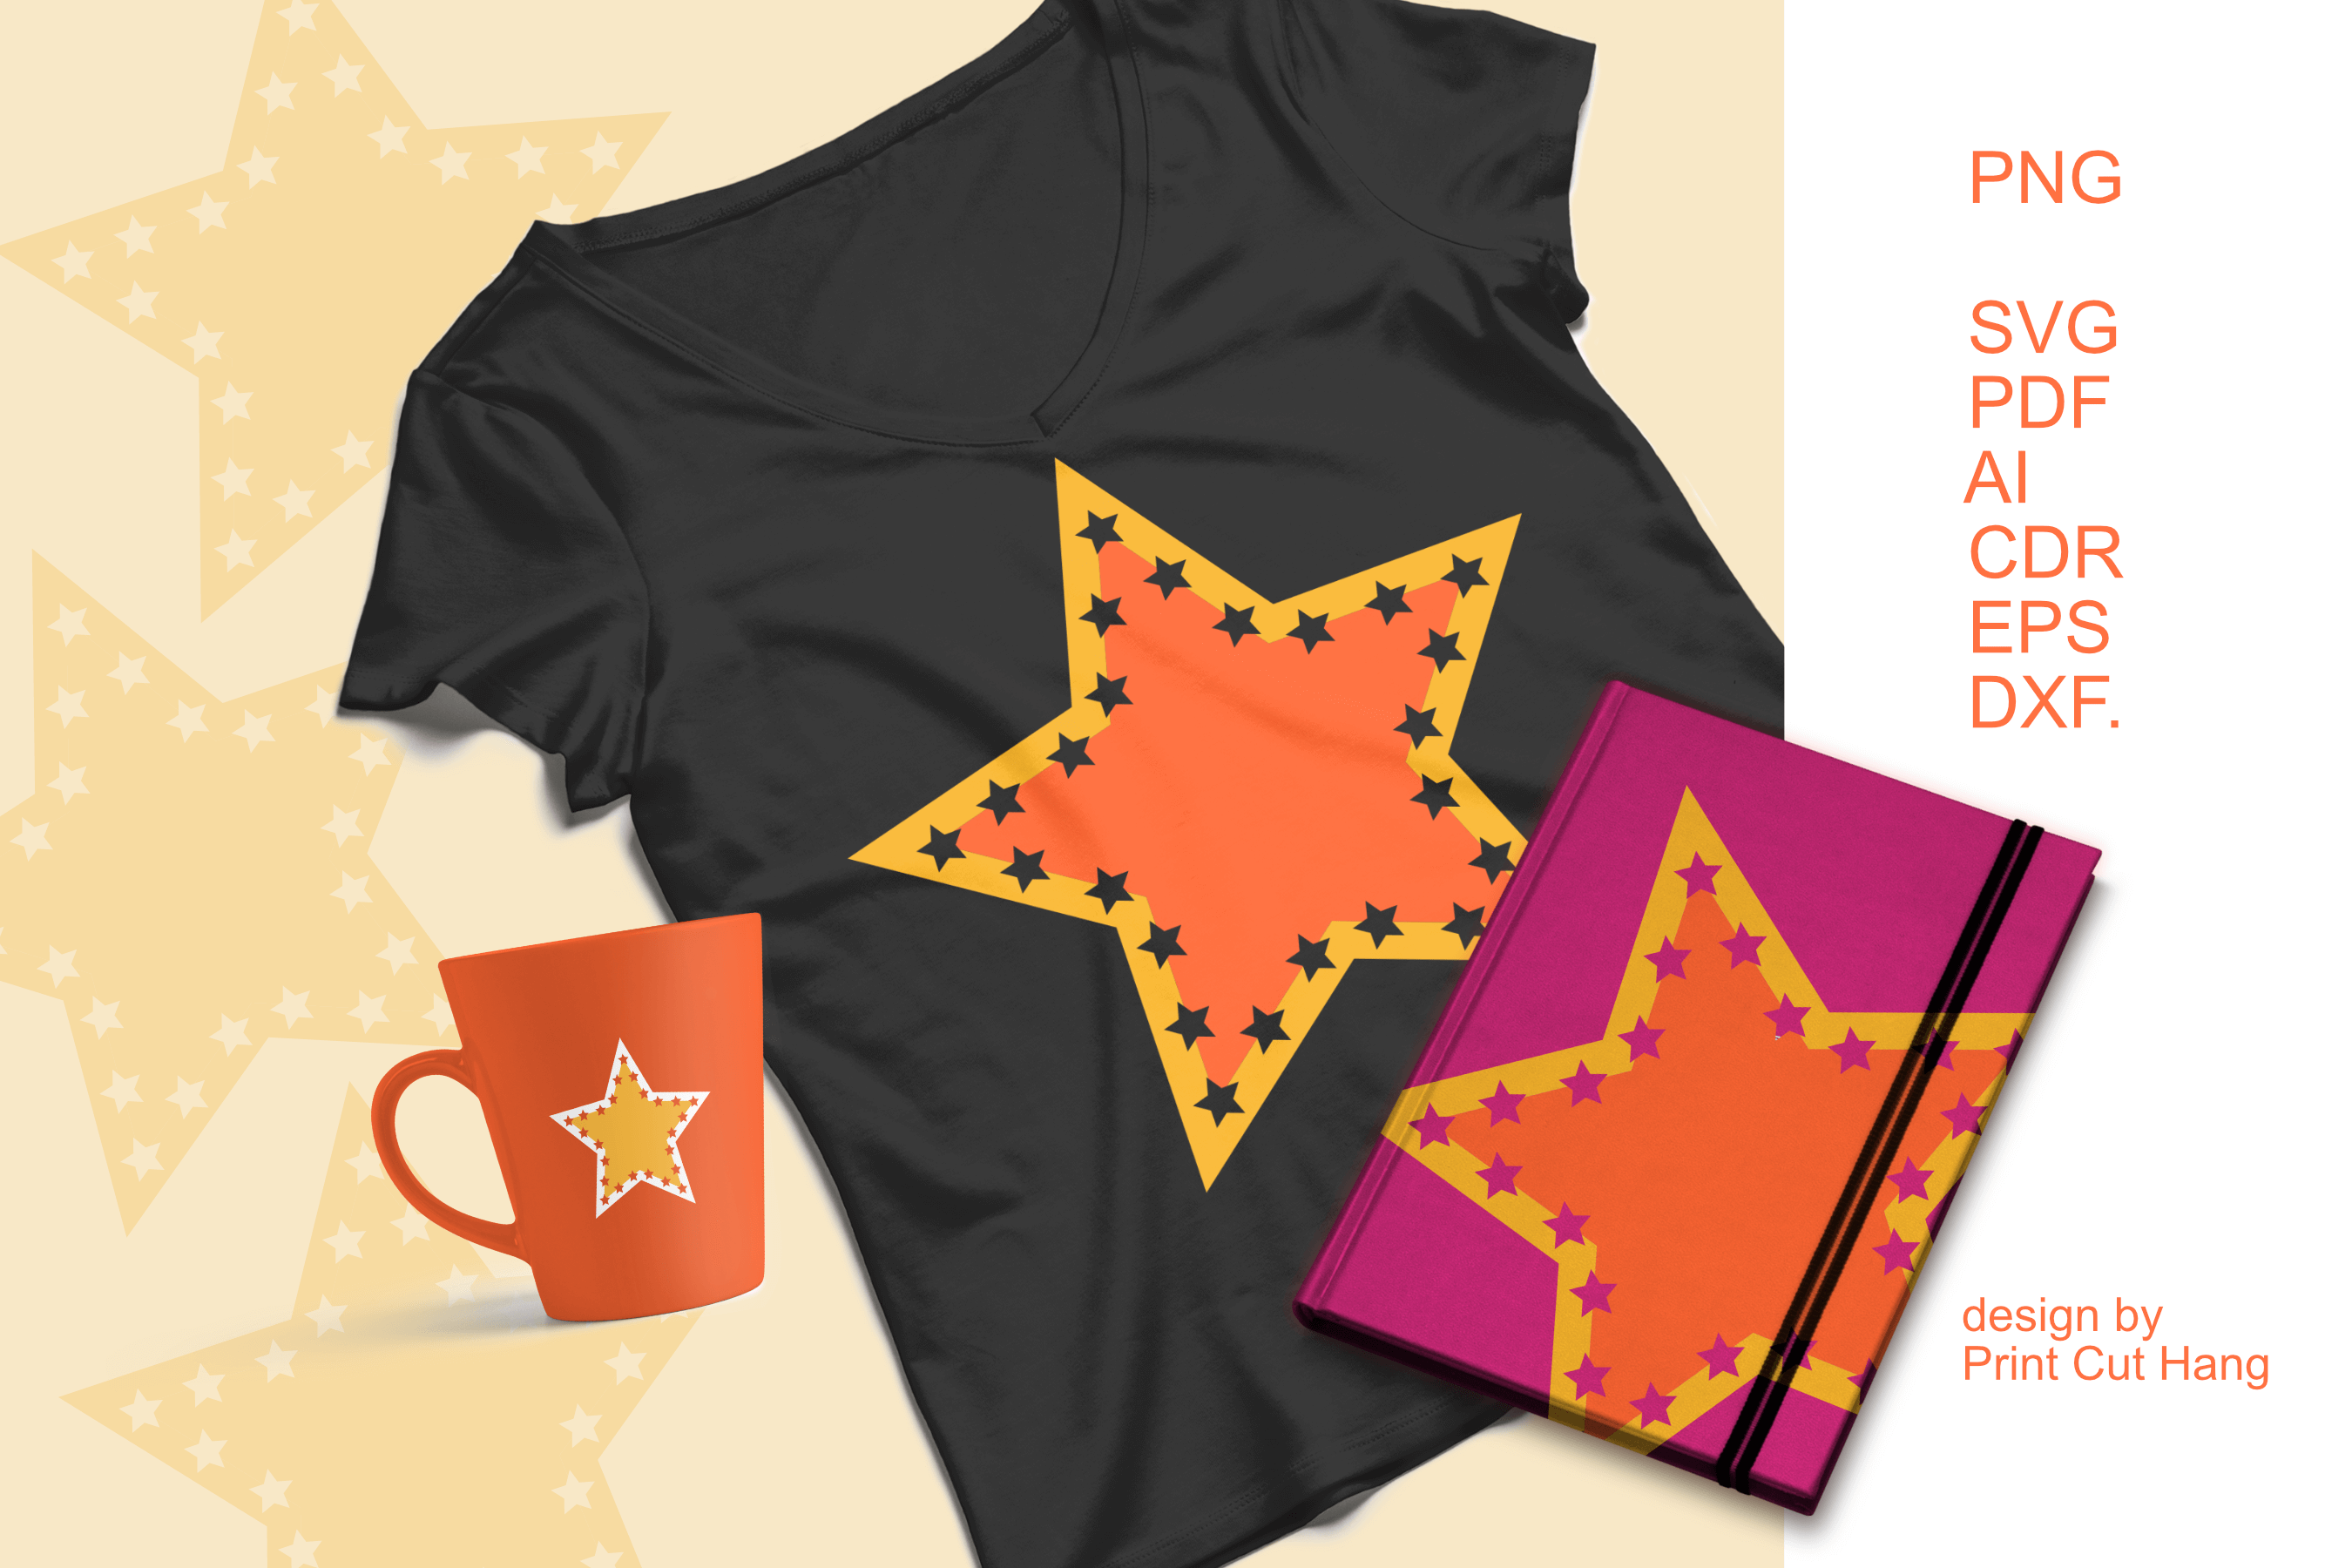 Download Free Star Shape Bicolored Design Graphic By Print Cut Hang Creative for Cricut Explore, Silhouette and other cutting machines.